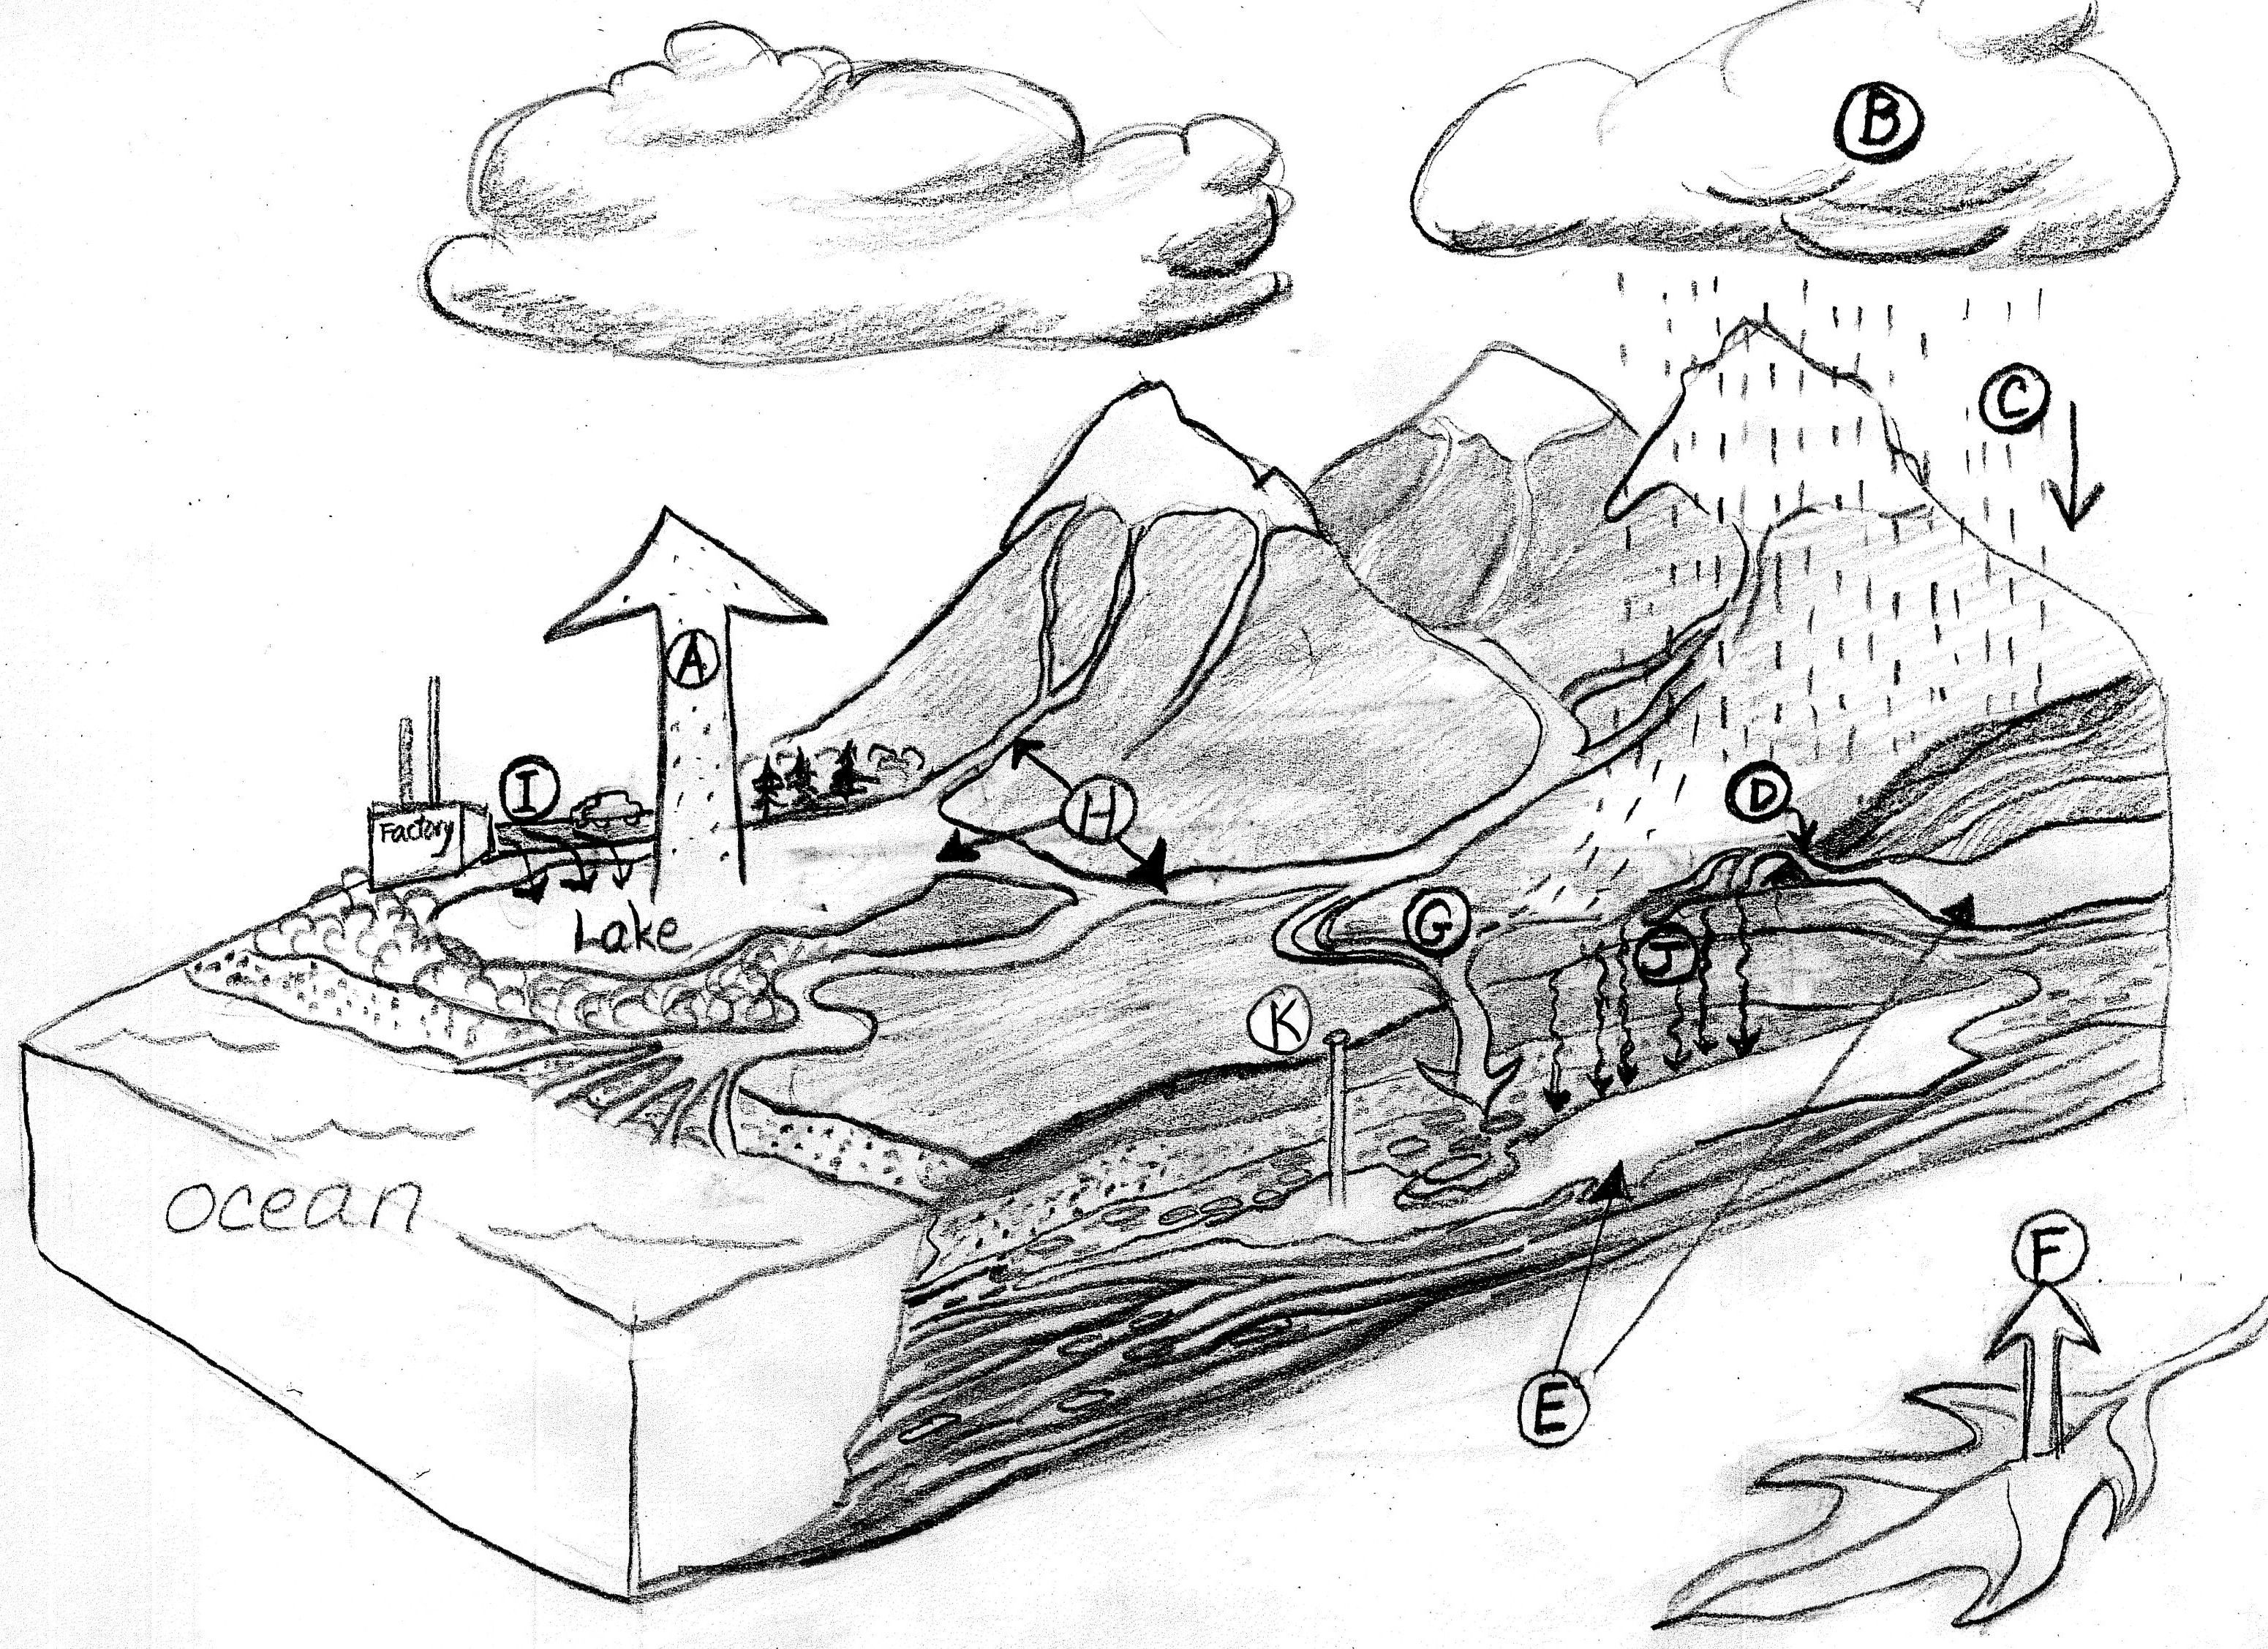 Uncategorized Water Cycle Diagram Worksheet 100 water cycle diagram effects of human activity on blank worksheet sketch coloring page view larger image image